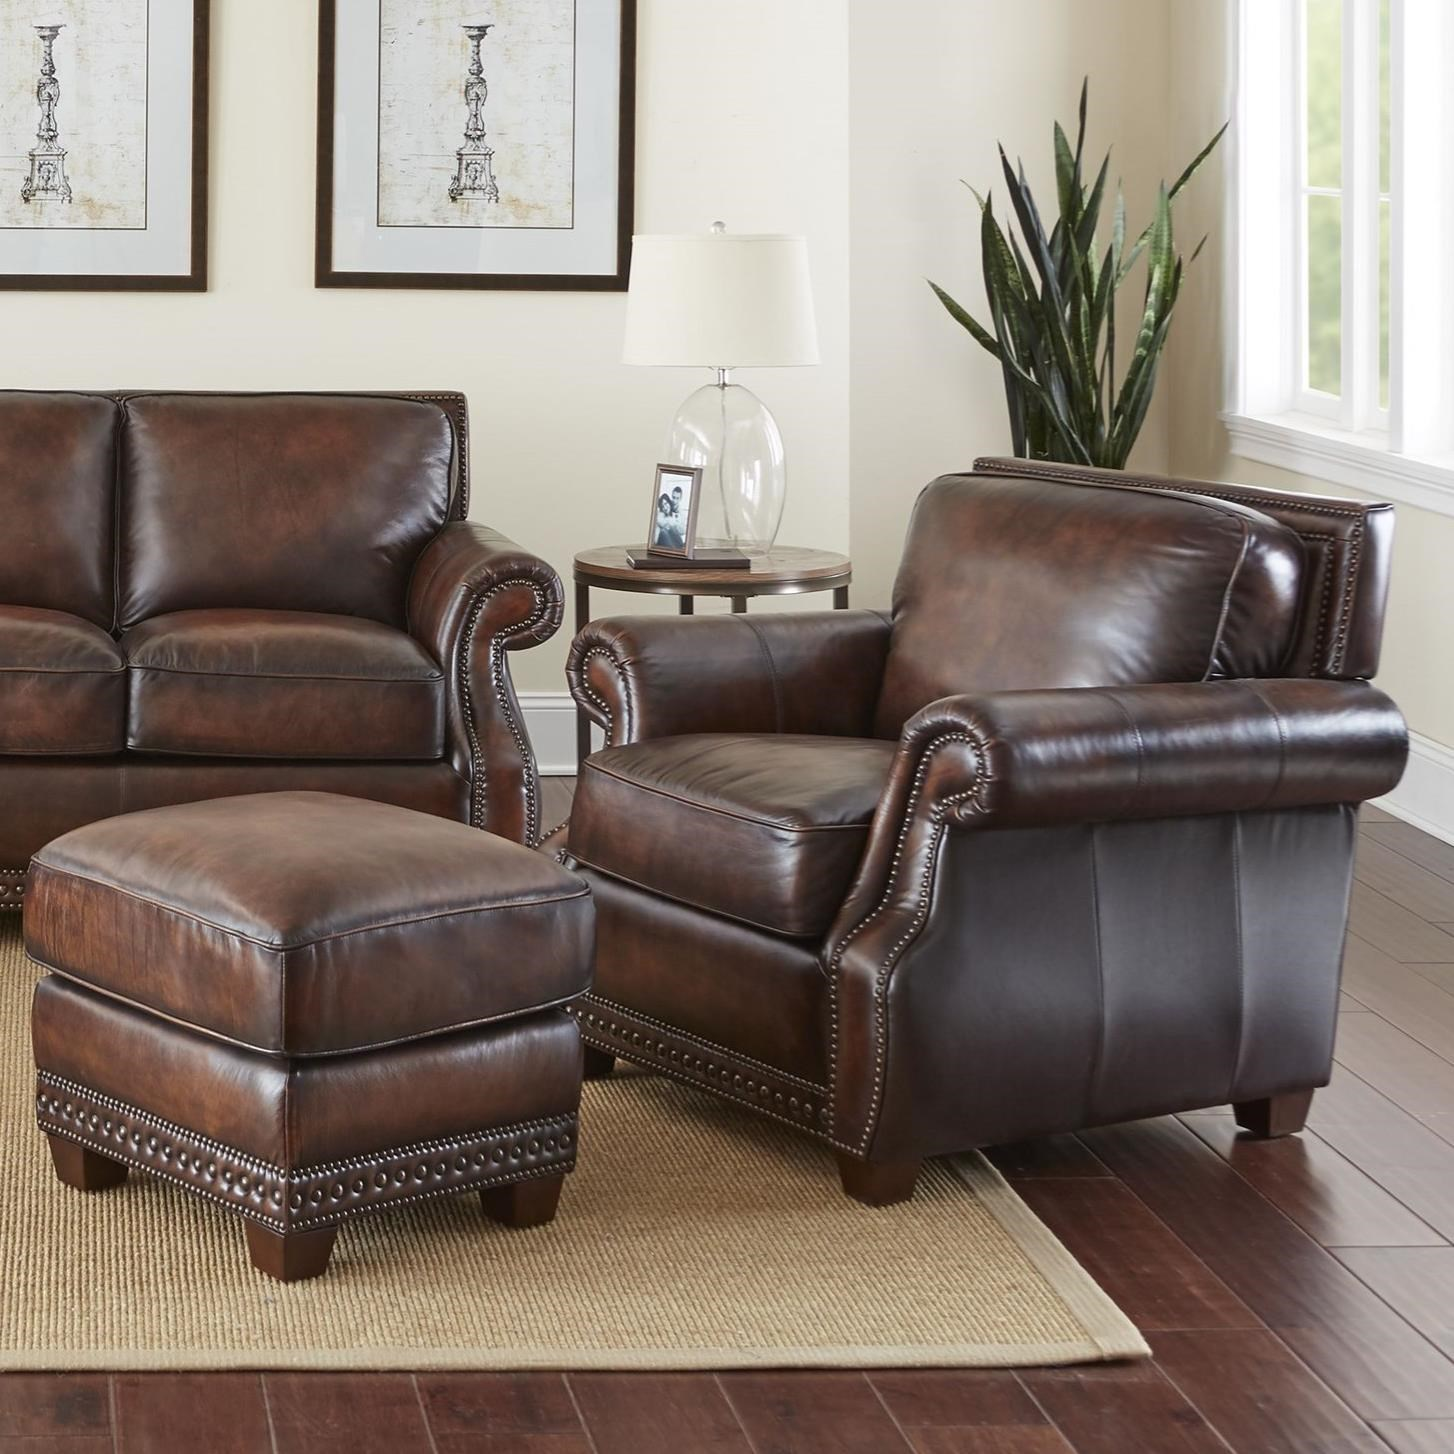 Leather Chair And Ottoman Jamestown Traditional Leather Chair And Ottoman With Nailheads